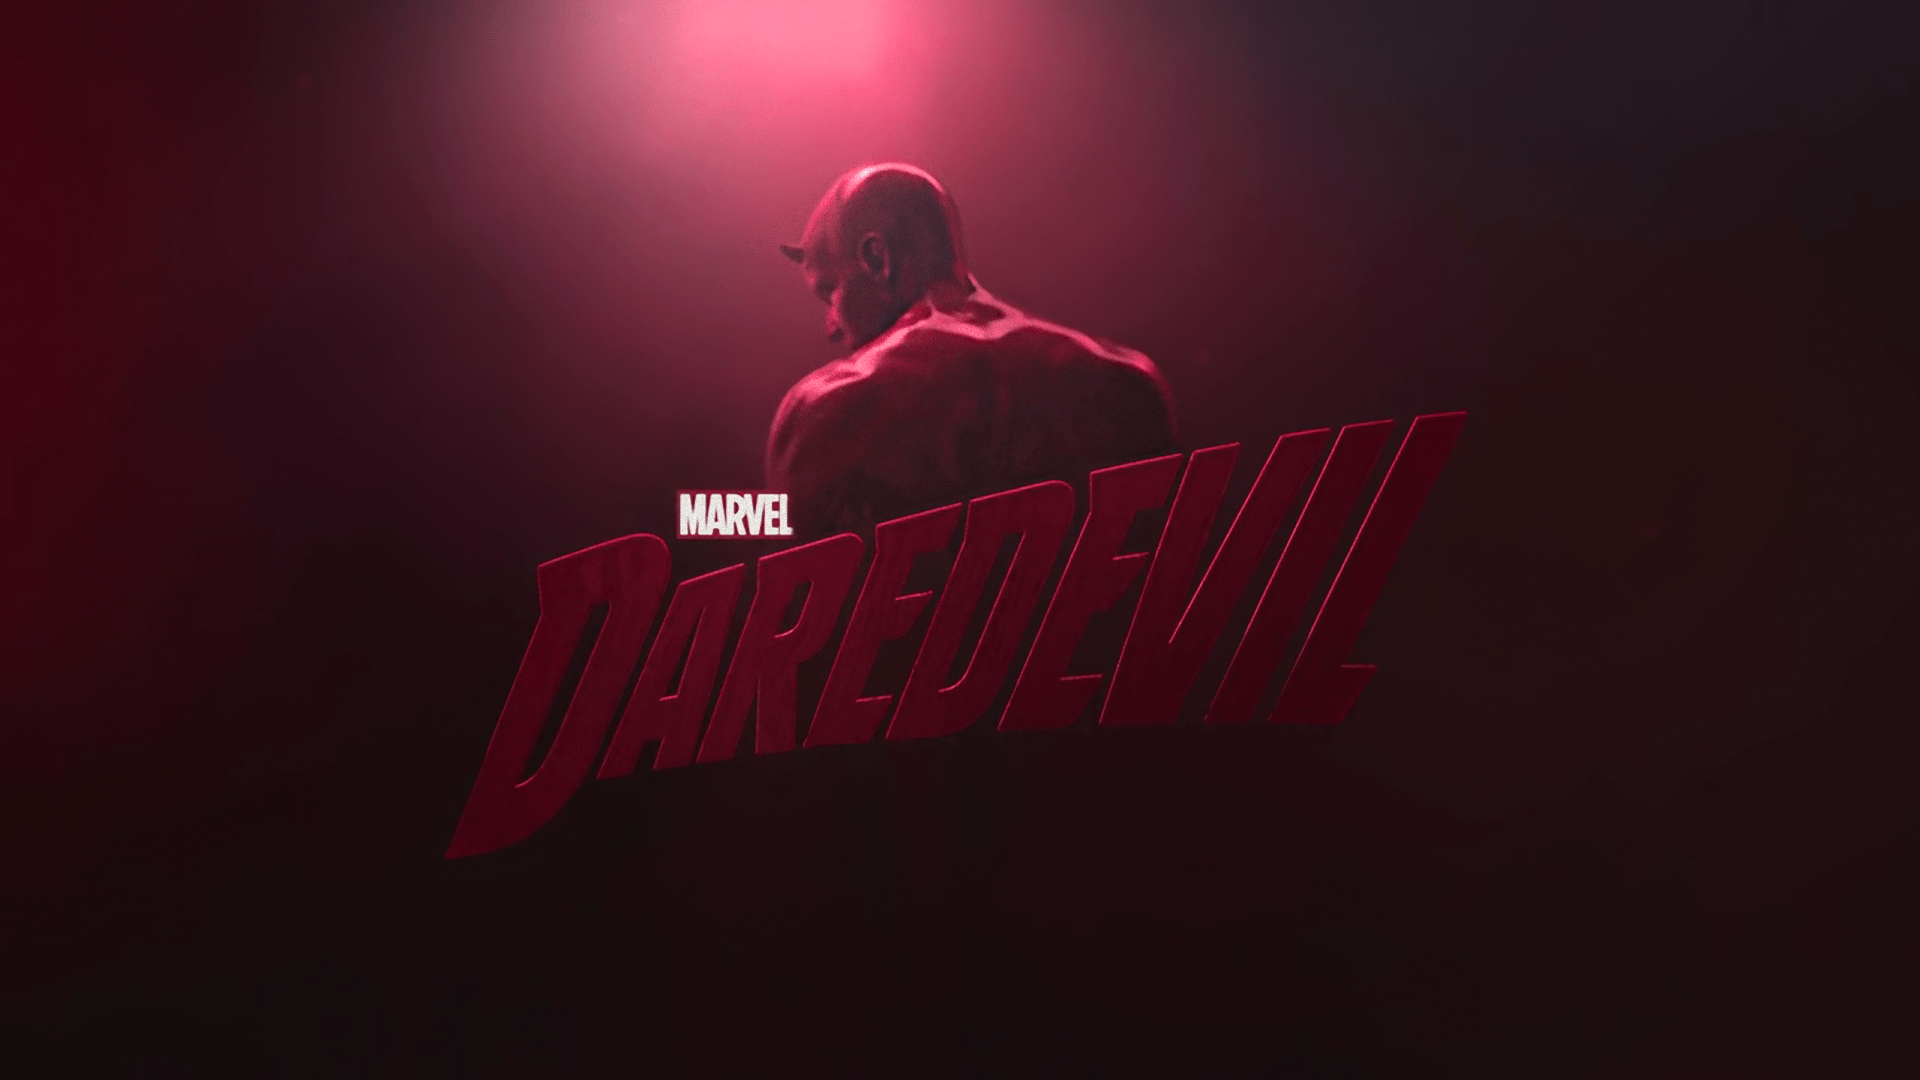 daredevil wallpapers hd techbeasts